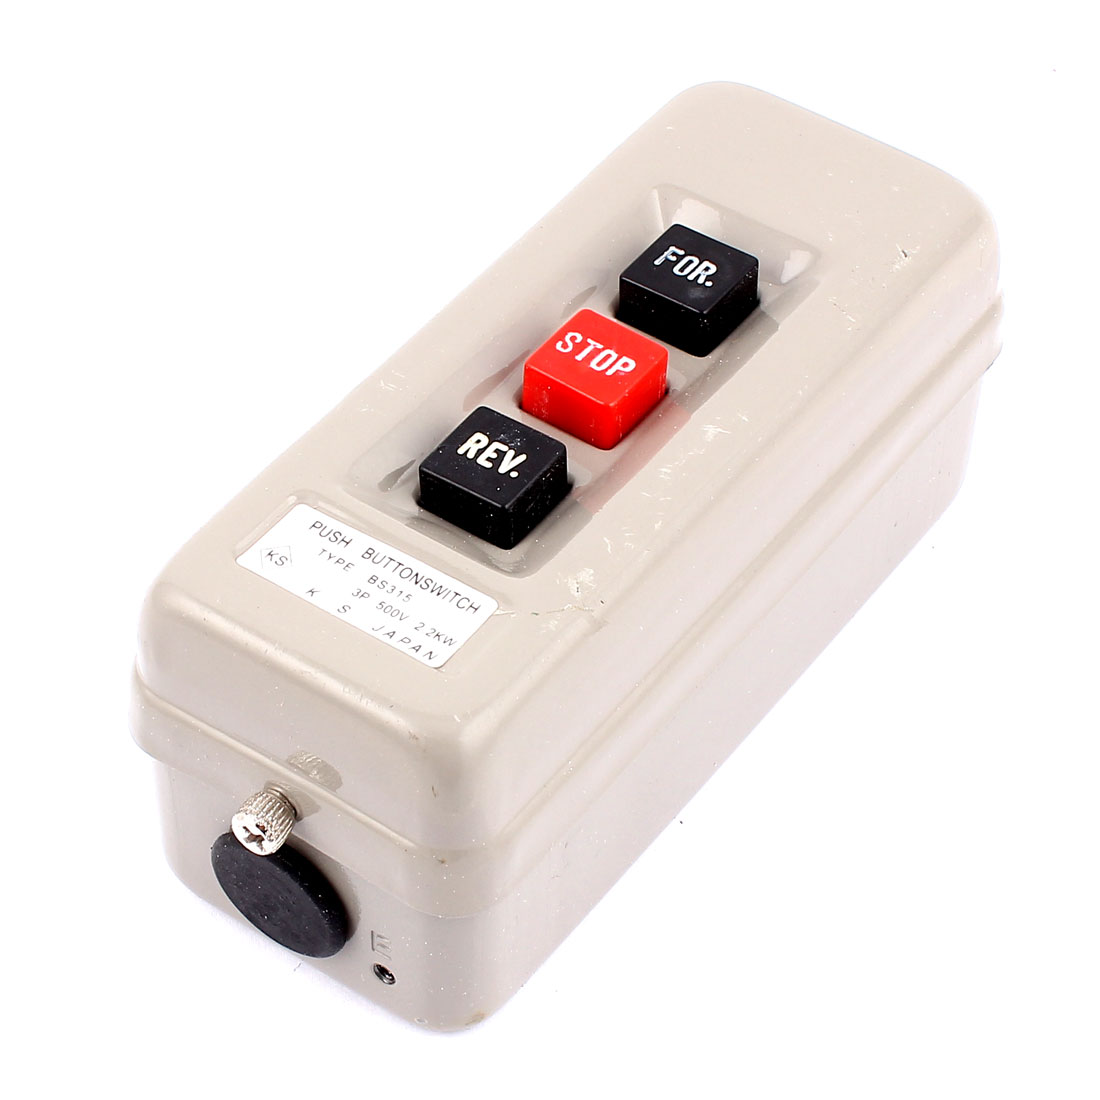 AC 500V 2.2KW For Stop Rev Station Control Pushbutton Switch for Hoist